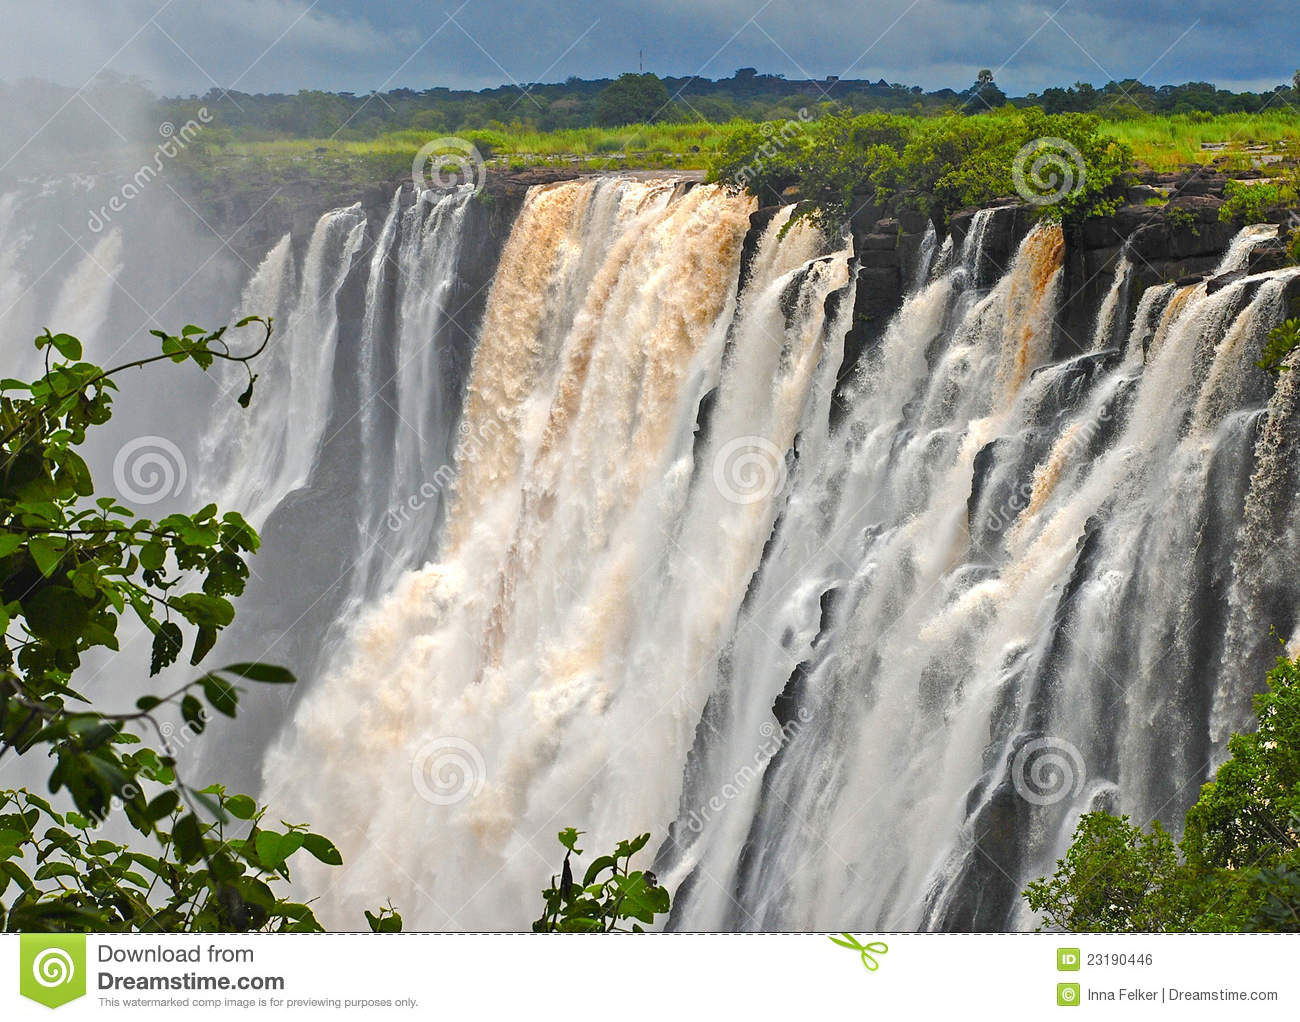 Majestic view with Victoria falls(South Africa)